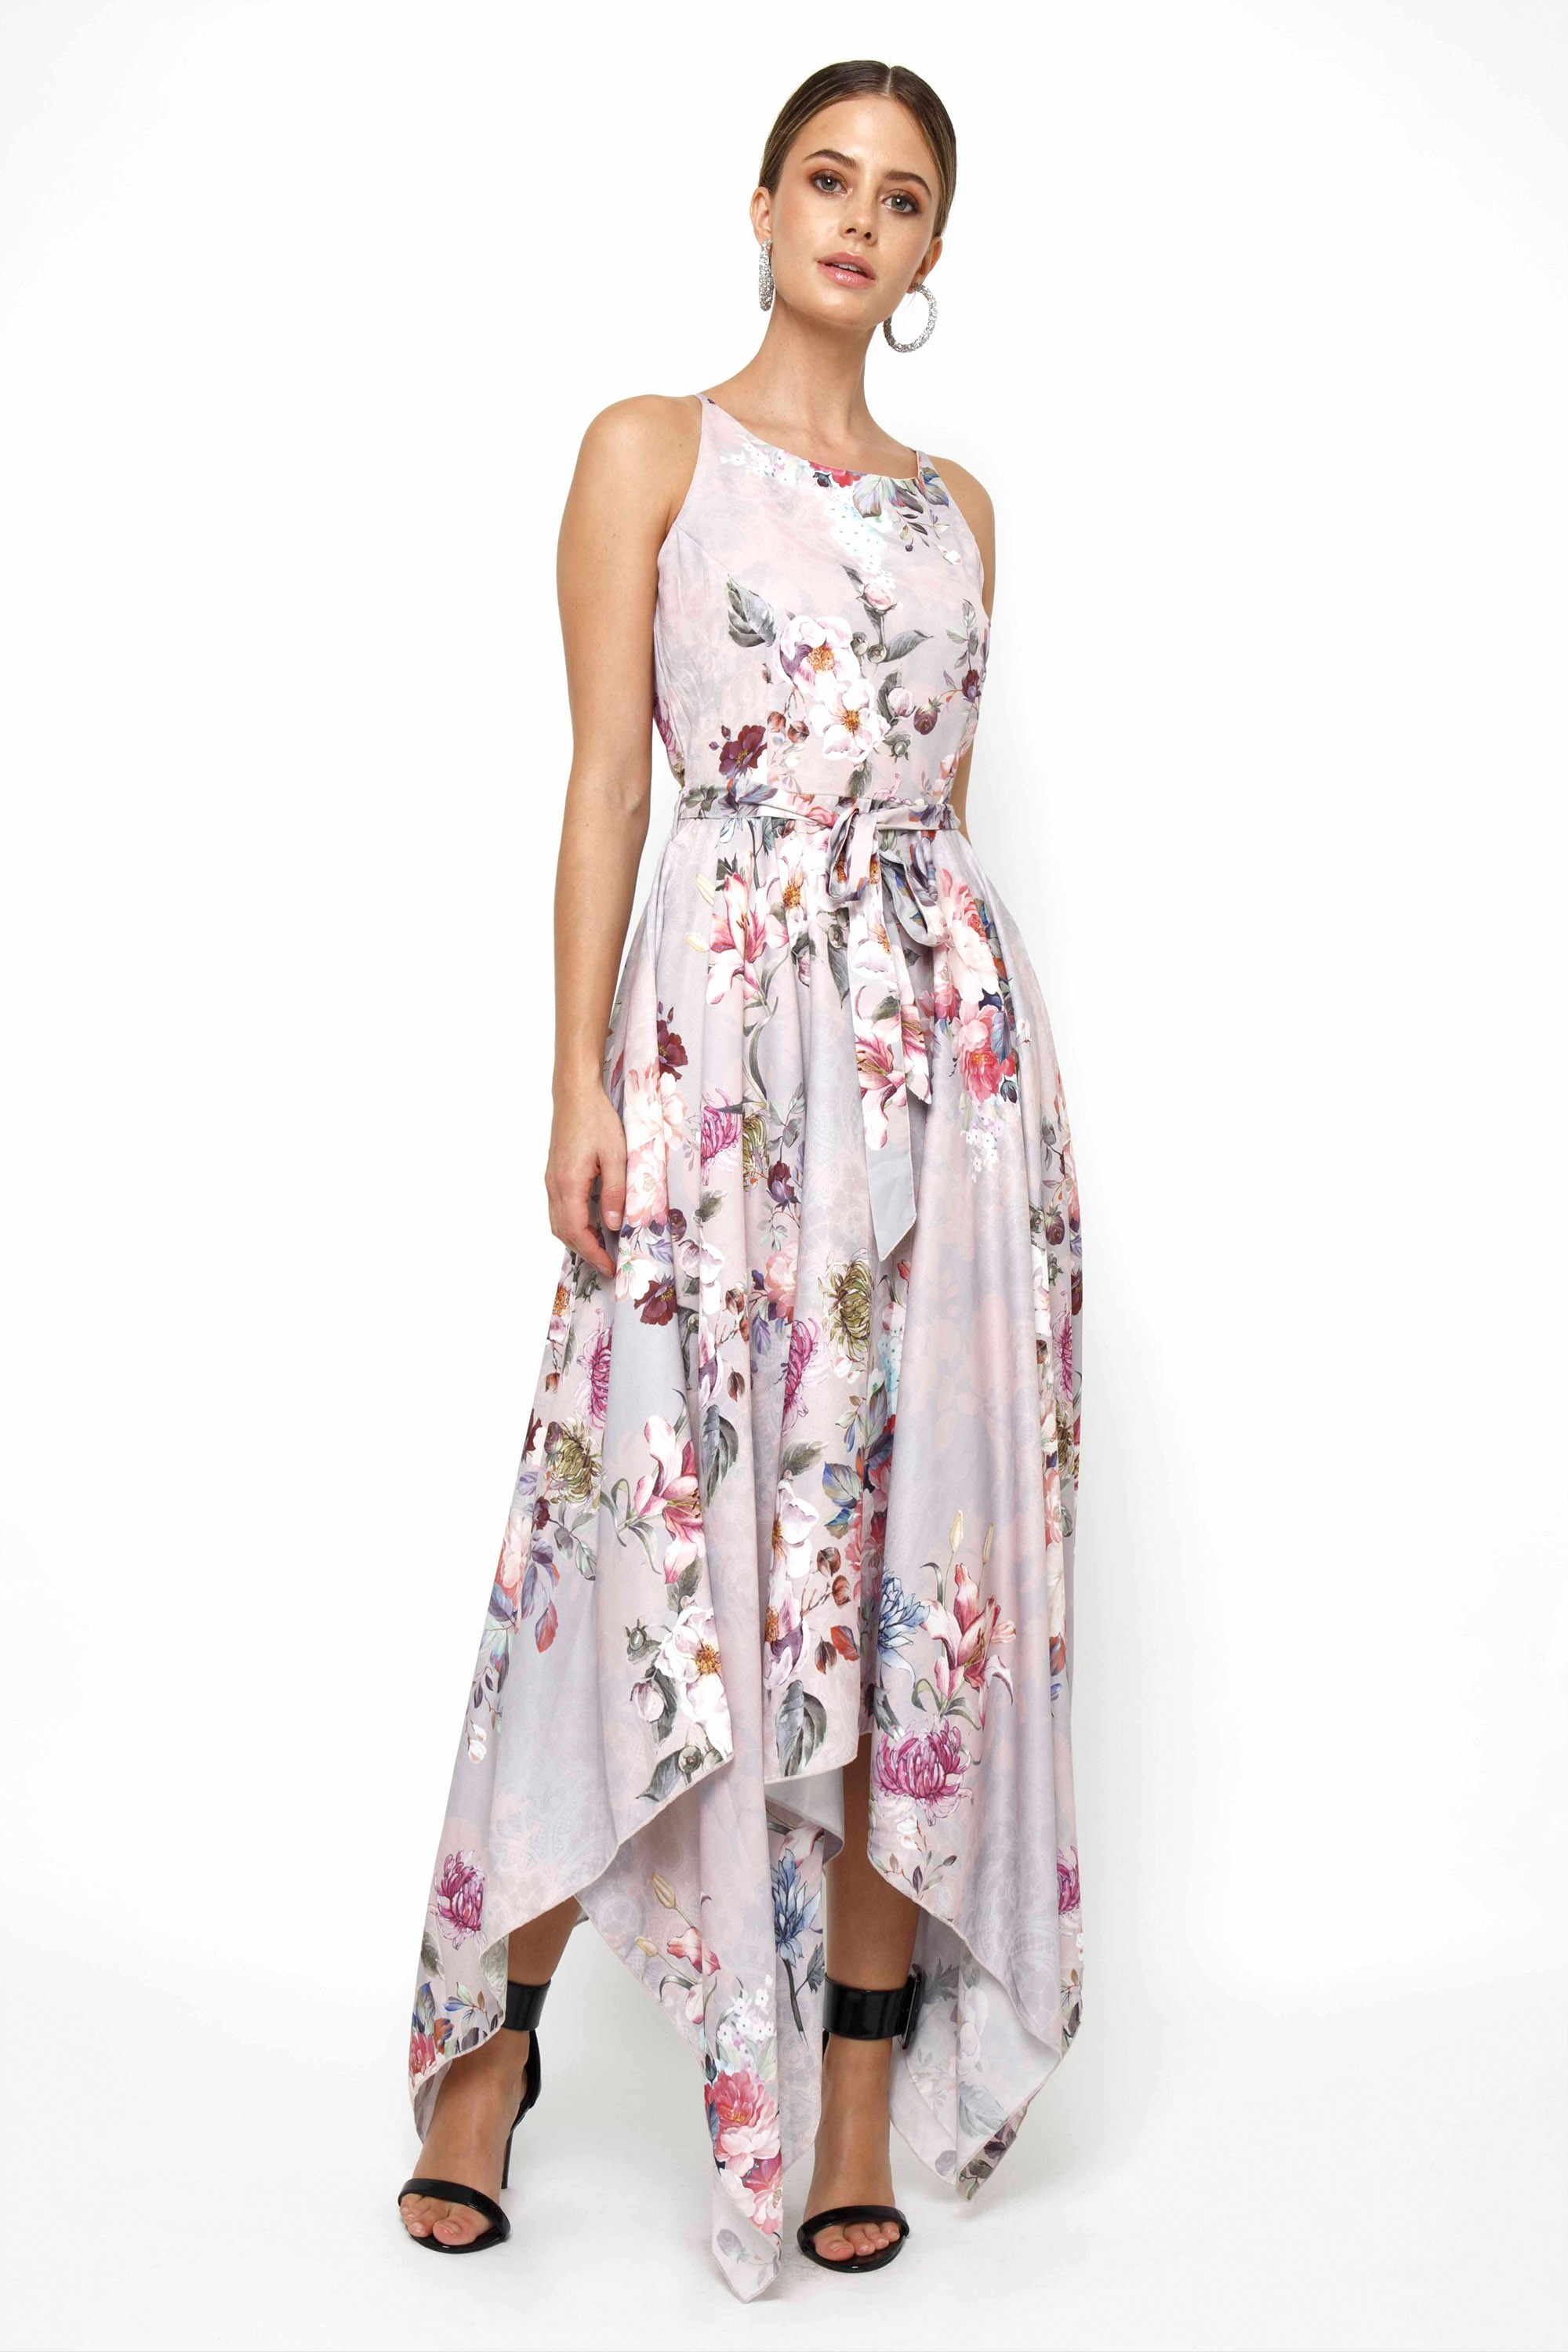 099190f280edf LACE & BEADS COSMOS GREY FLORAL MAXI DRESS | PARTY DRESSES